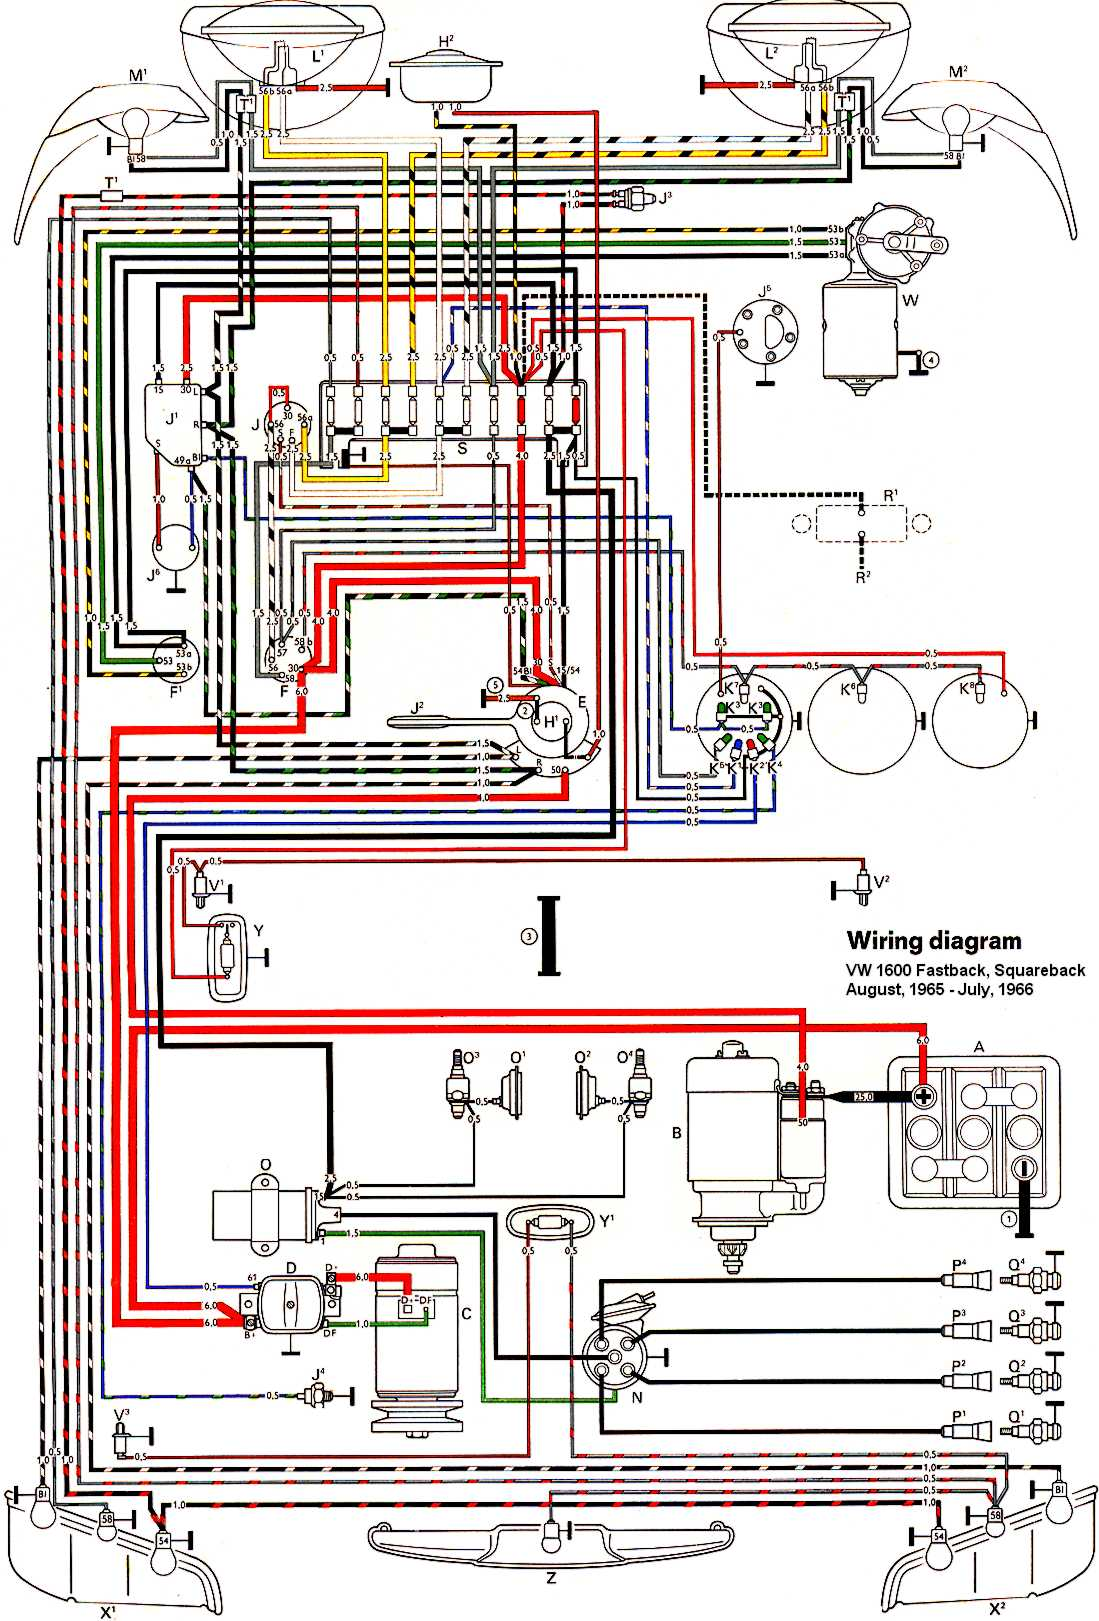 1989 vw jetta fuse box diagram vw squareback fuse wiring